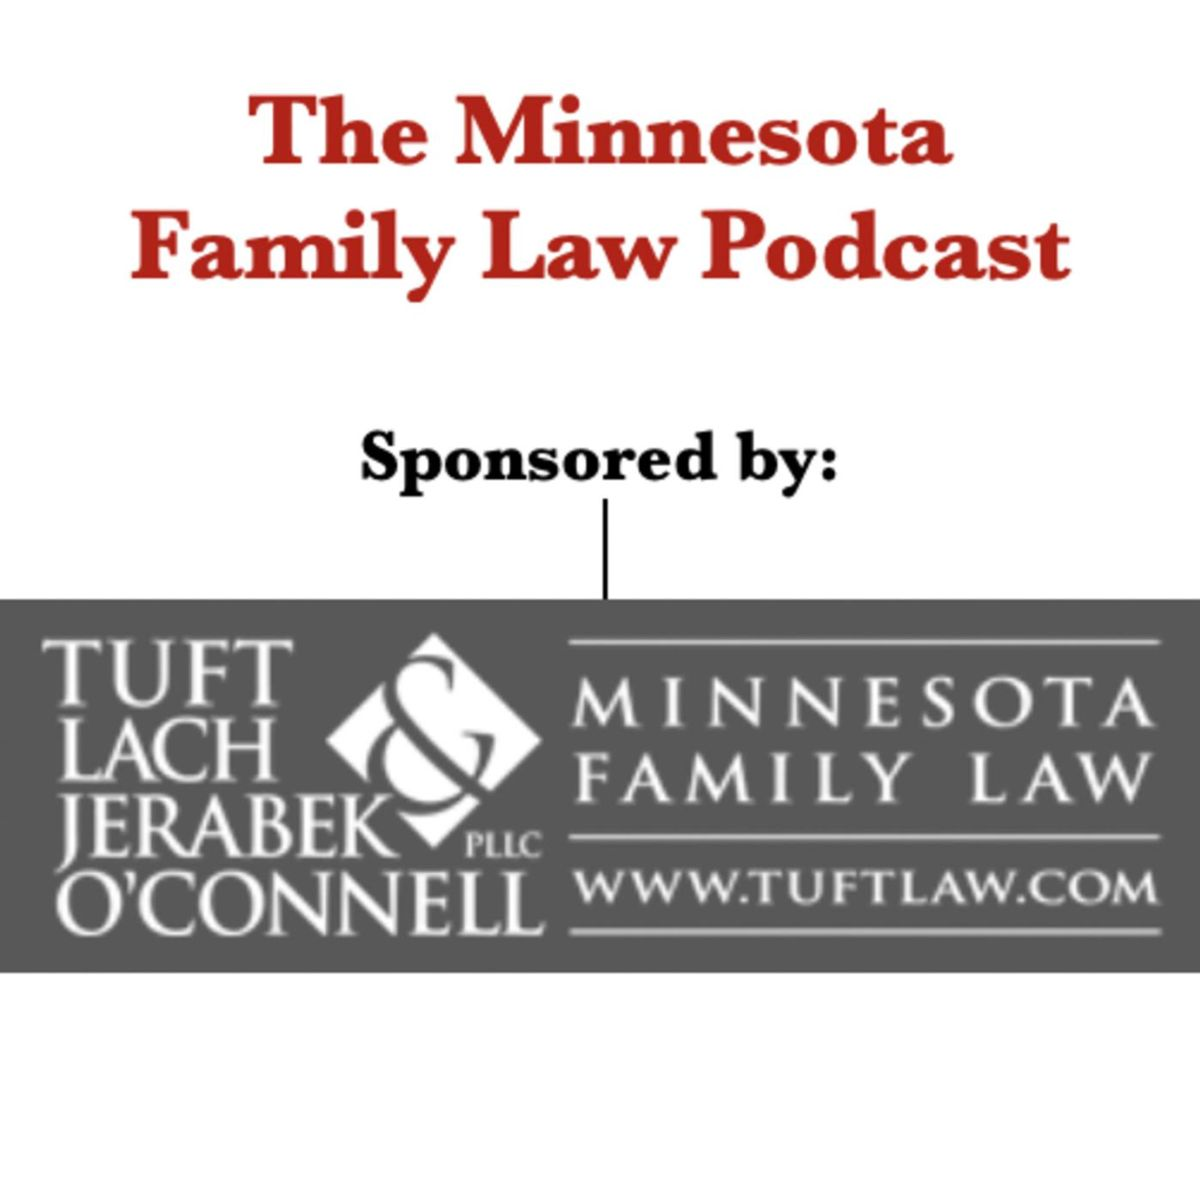 The Minnesota Family Law Podcast logo